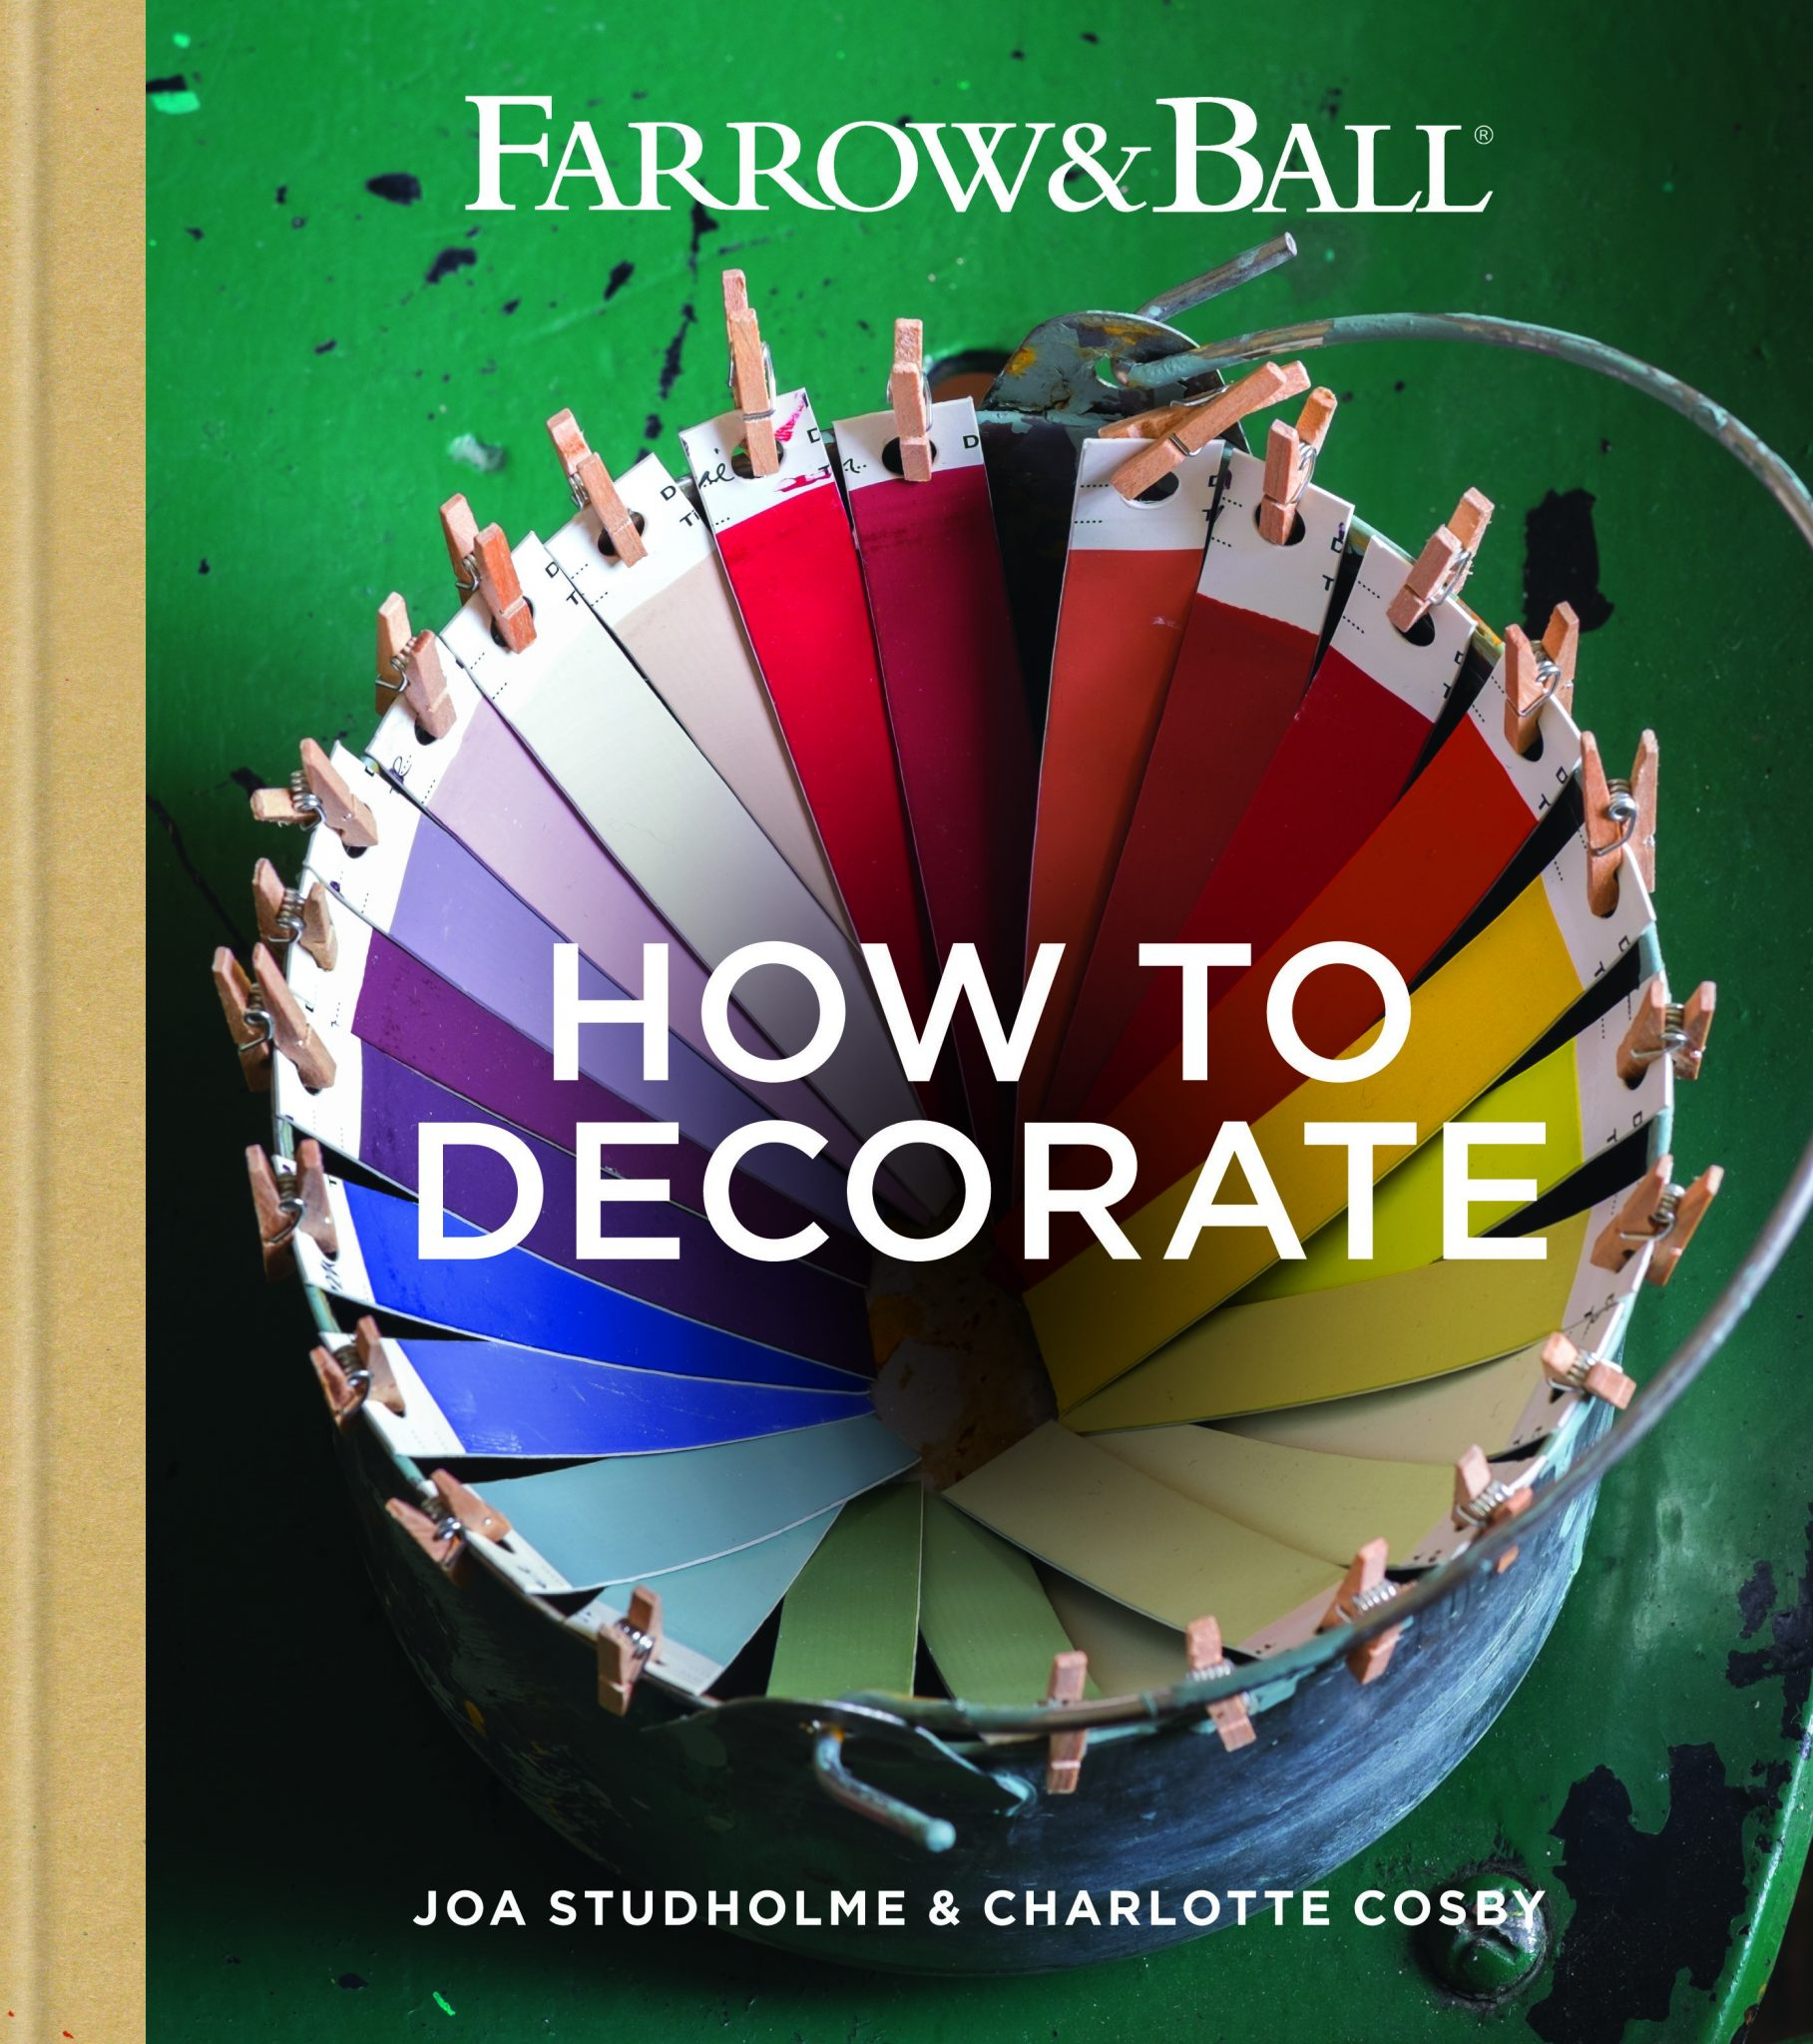 farrow-ball-how-to-decorate-cover